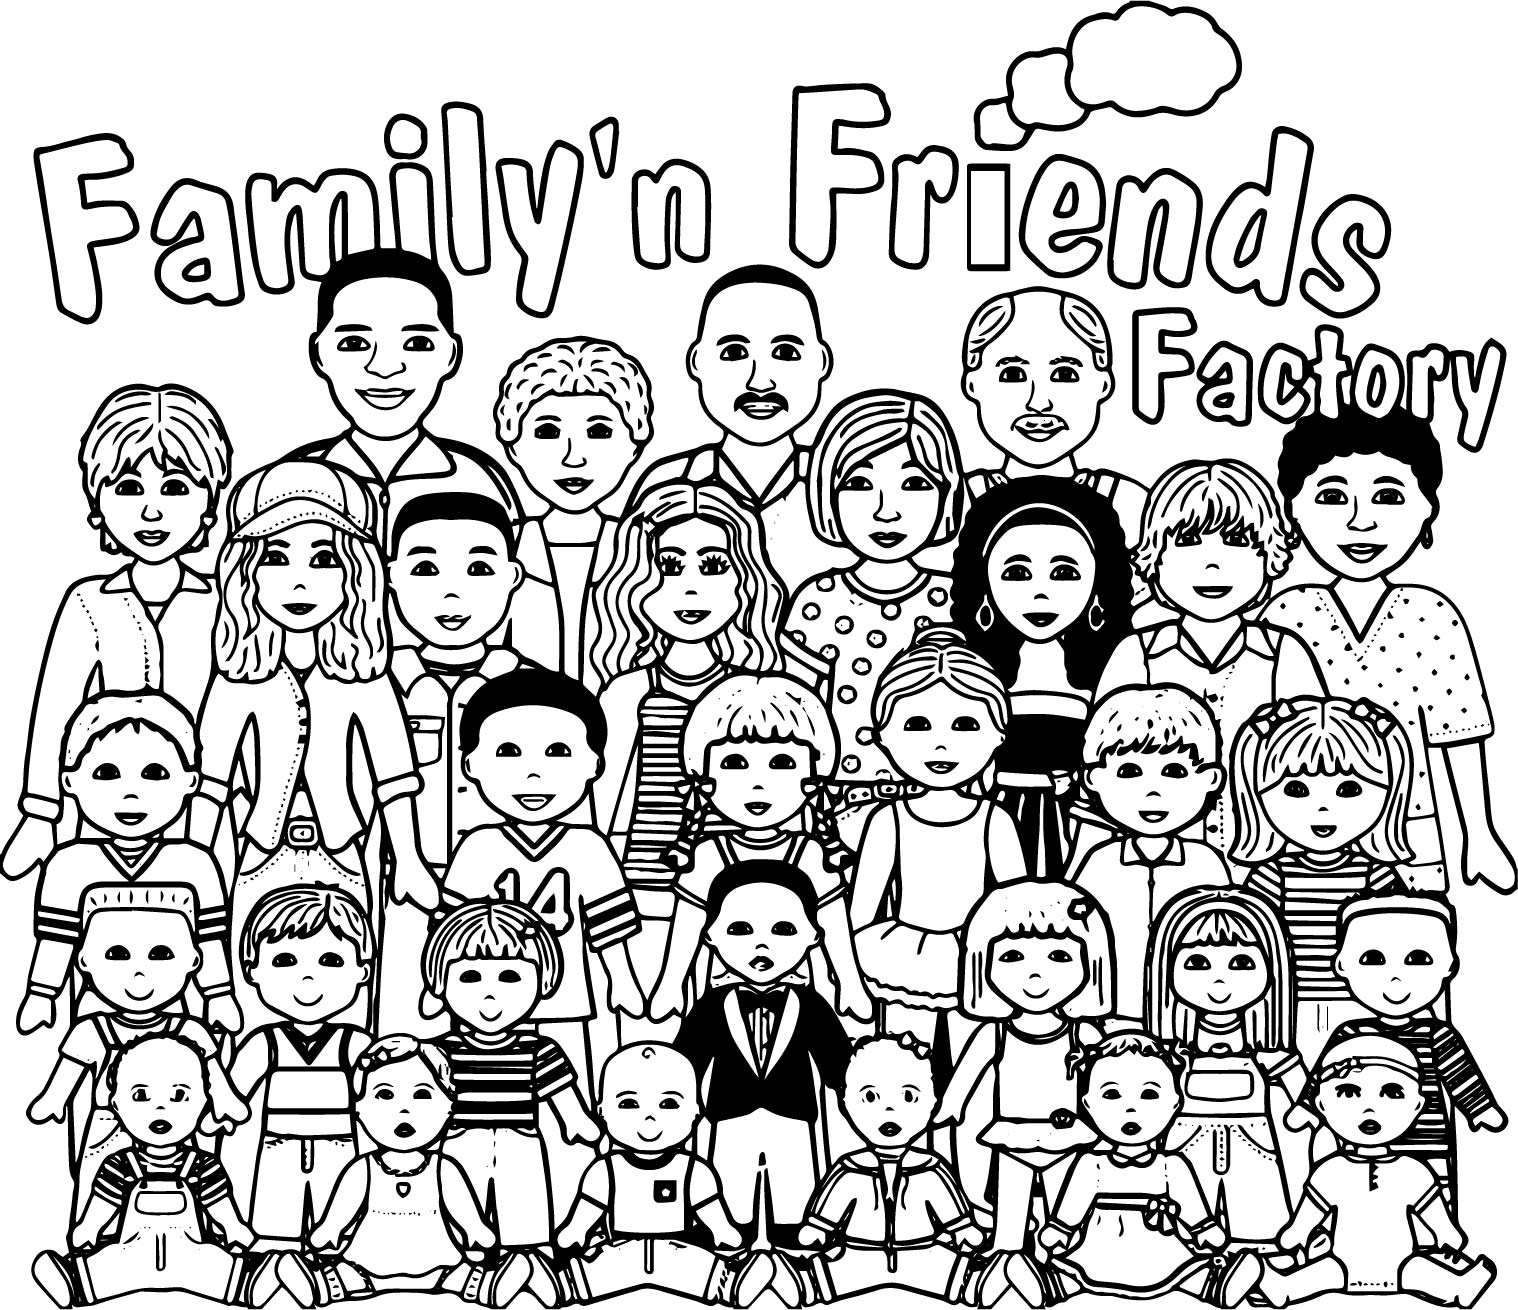 People Graphics Family Friends Factory Teen Girls Edition Coloring Page